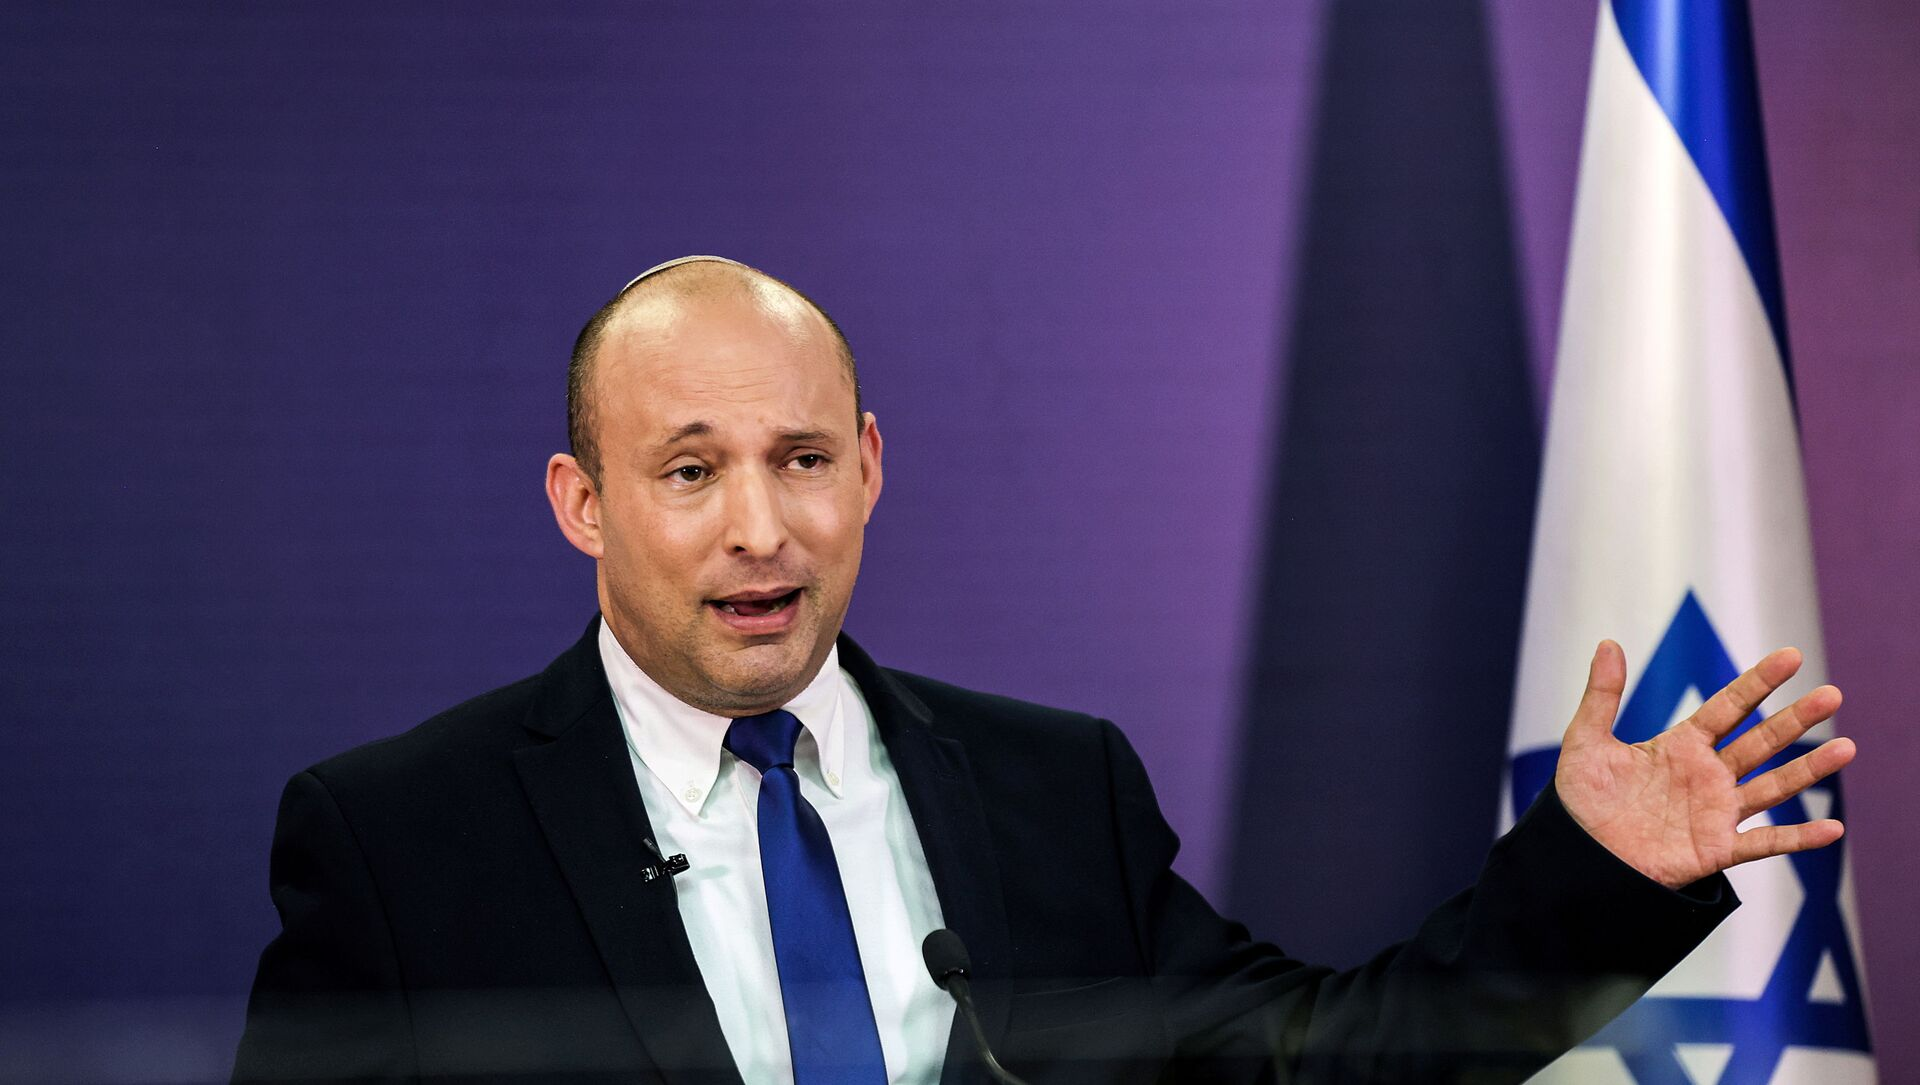 Naftali Bennett, Israeli parliament member from the Yamina party, gestures as he gives a statement at the Knesset, Israel's parliament, in Jerusalem, June 6, 2021 - Sputnik International, 1920, 13.06.2021